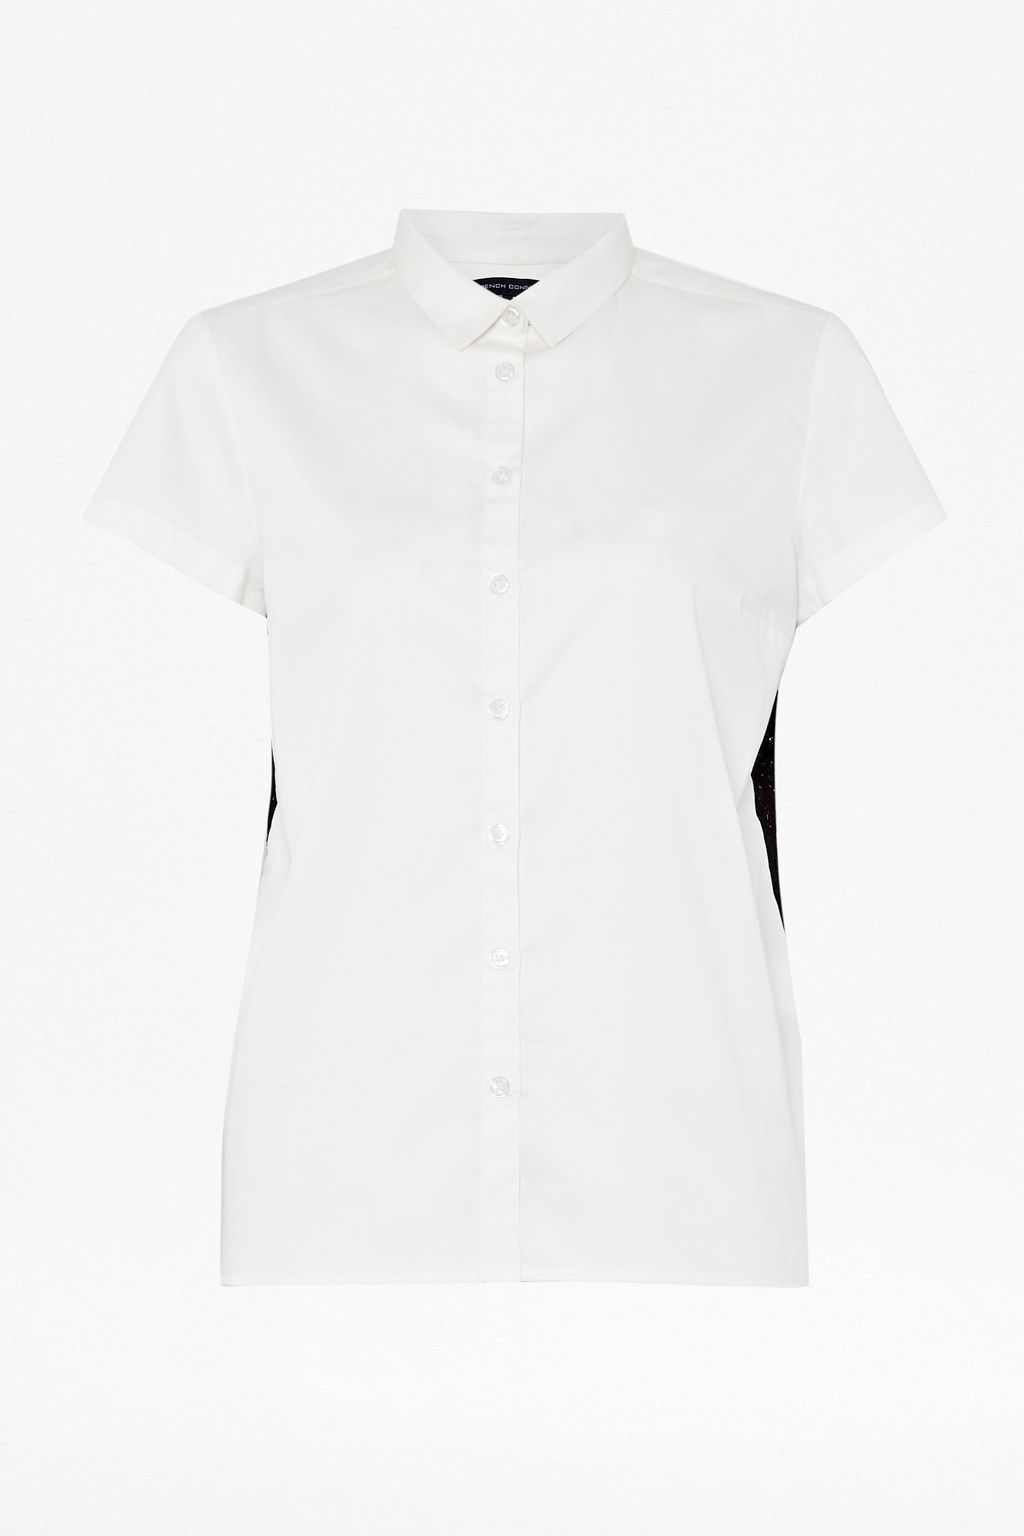 Abby lace short sleeve classic shirt